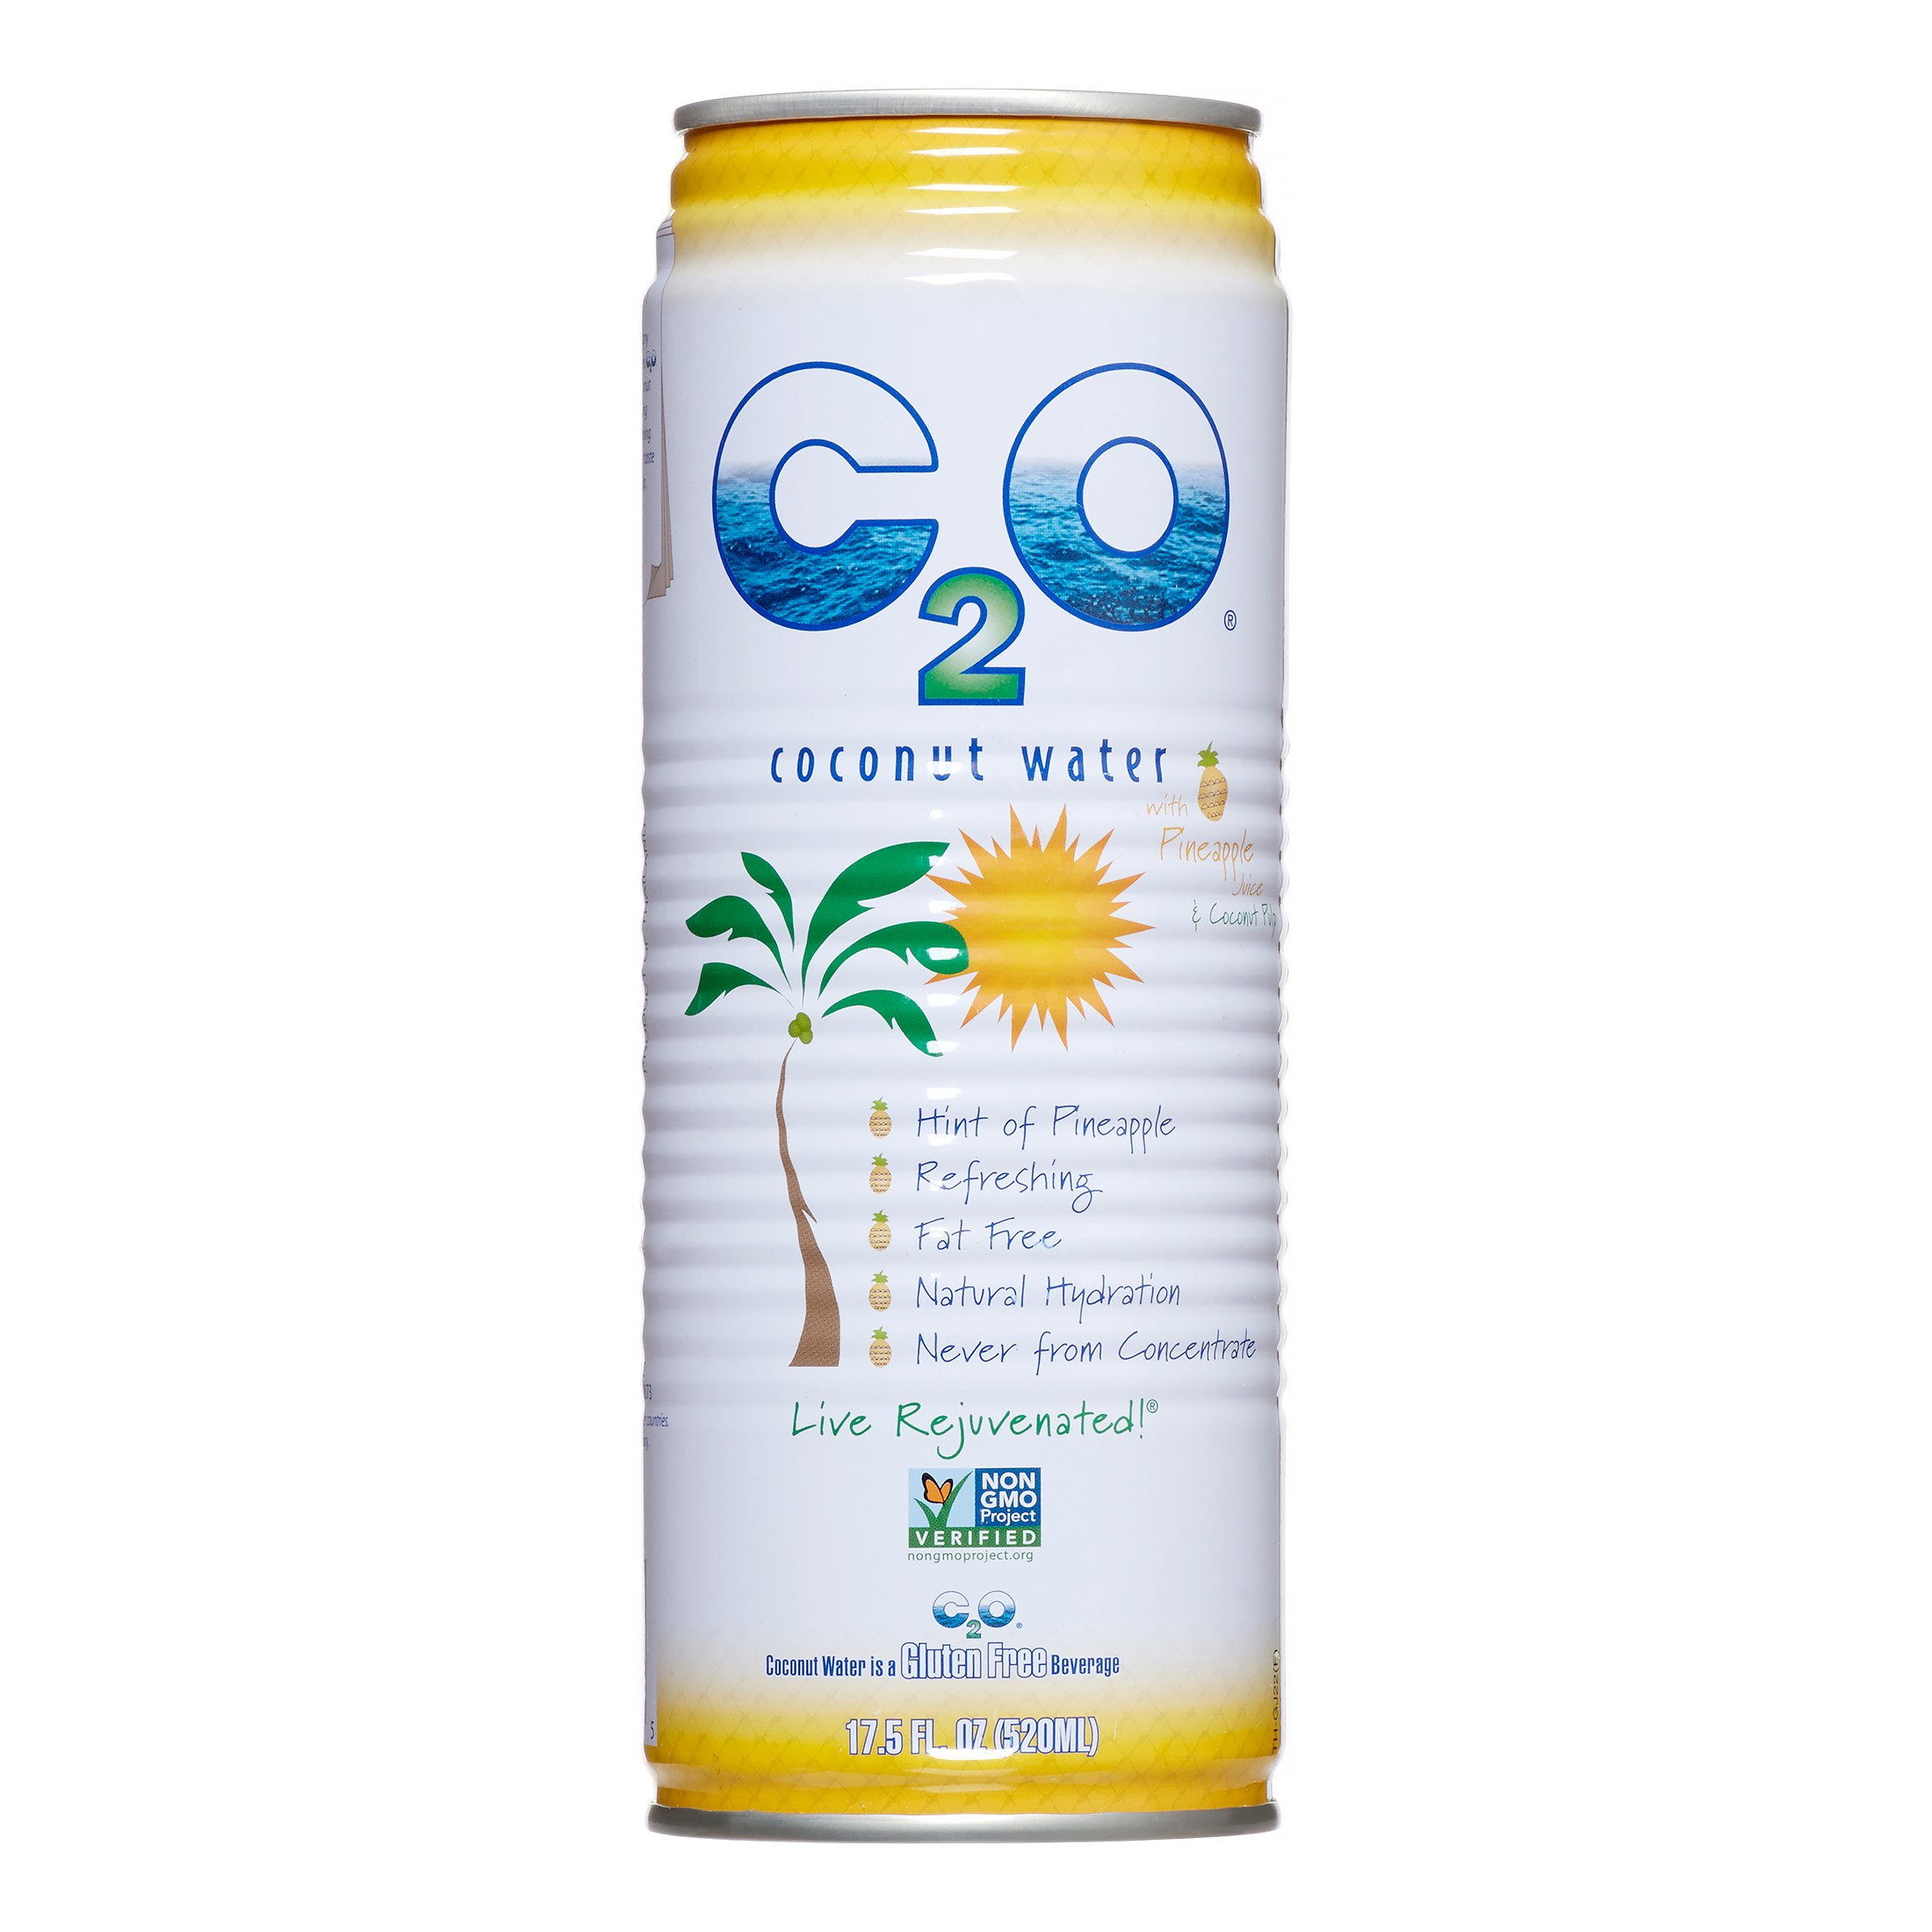 C2O Pure Coconut Water with Pineapple, 17.5 Fl Oz, 12 Ct